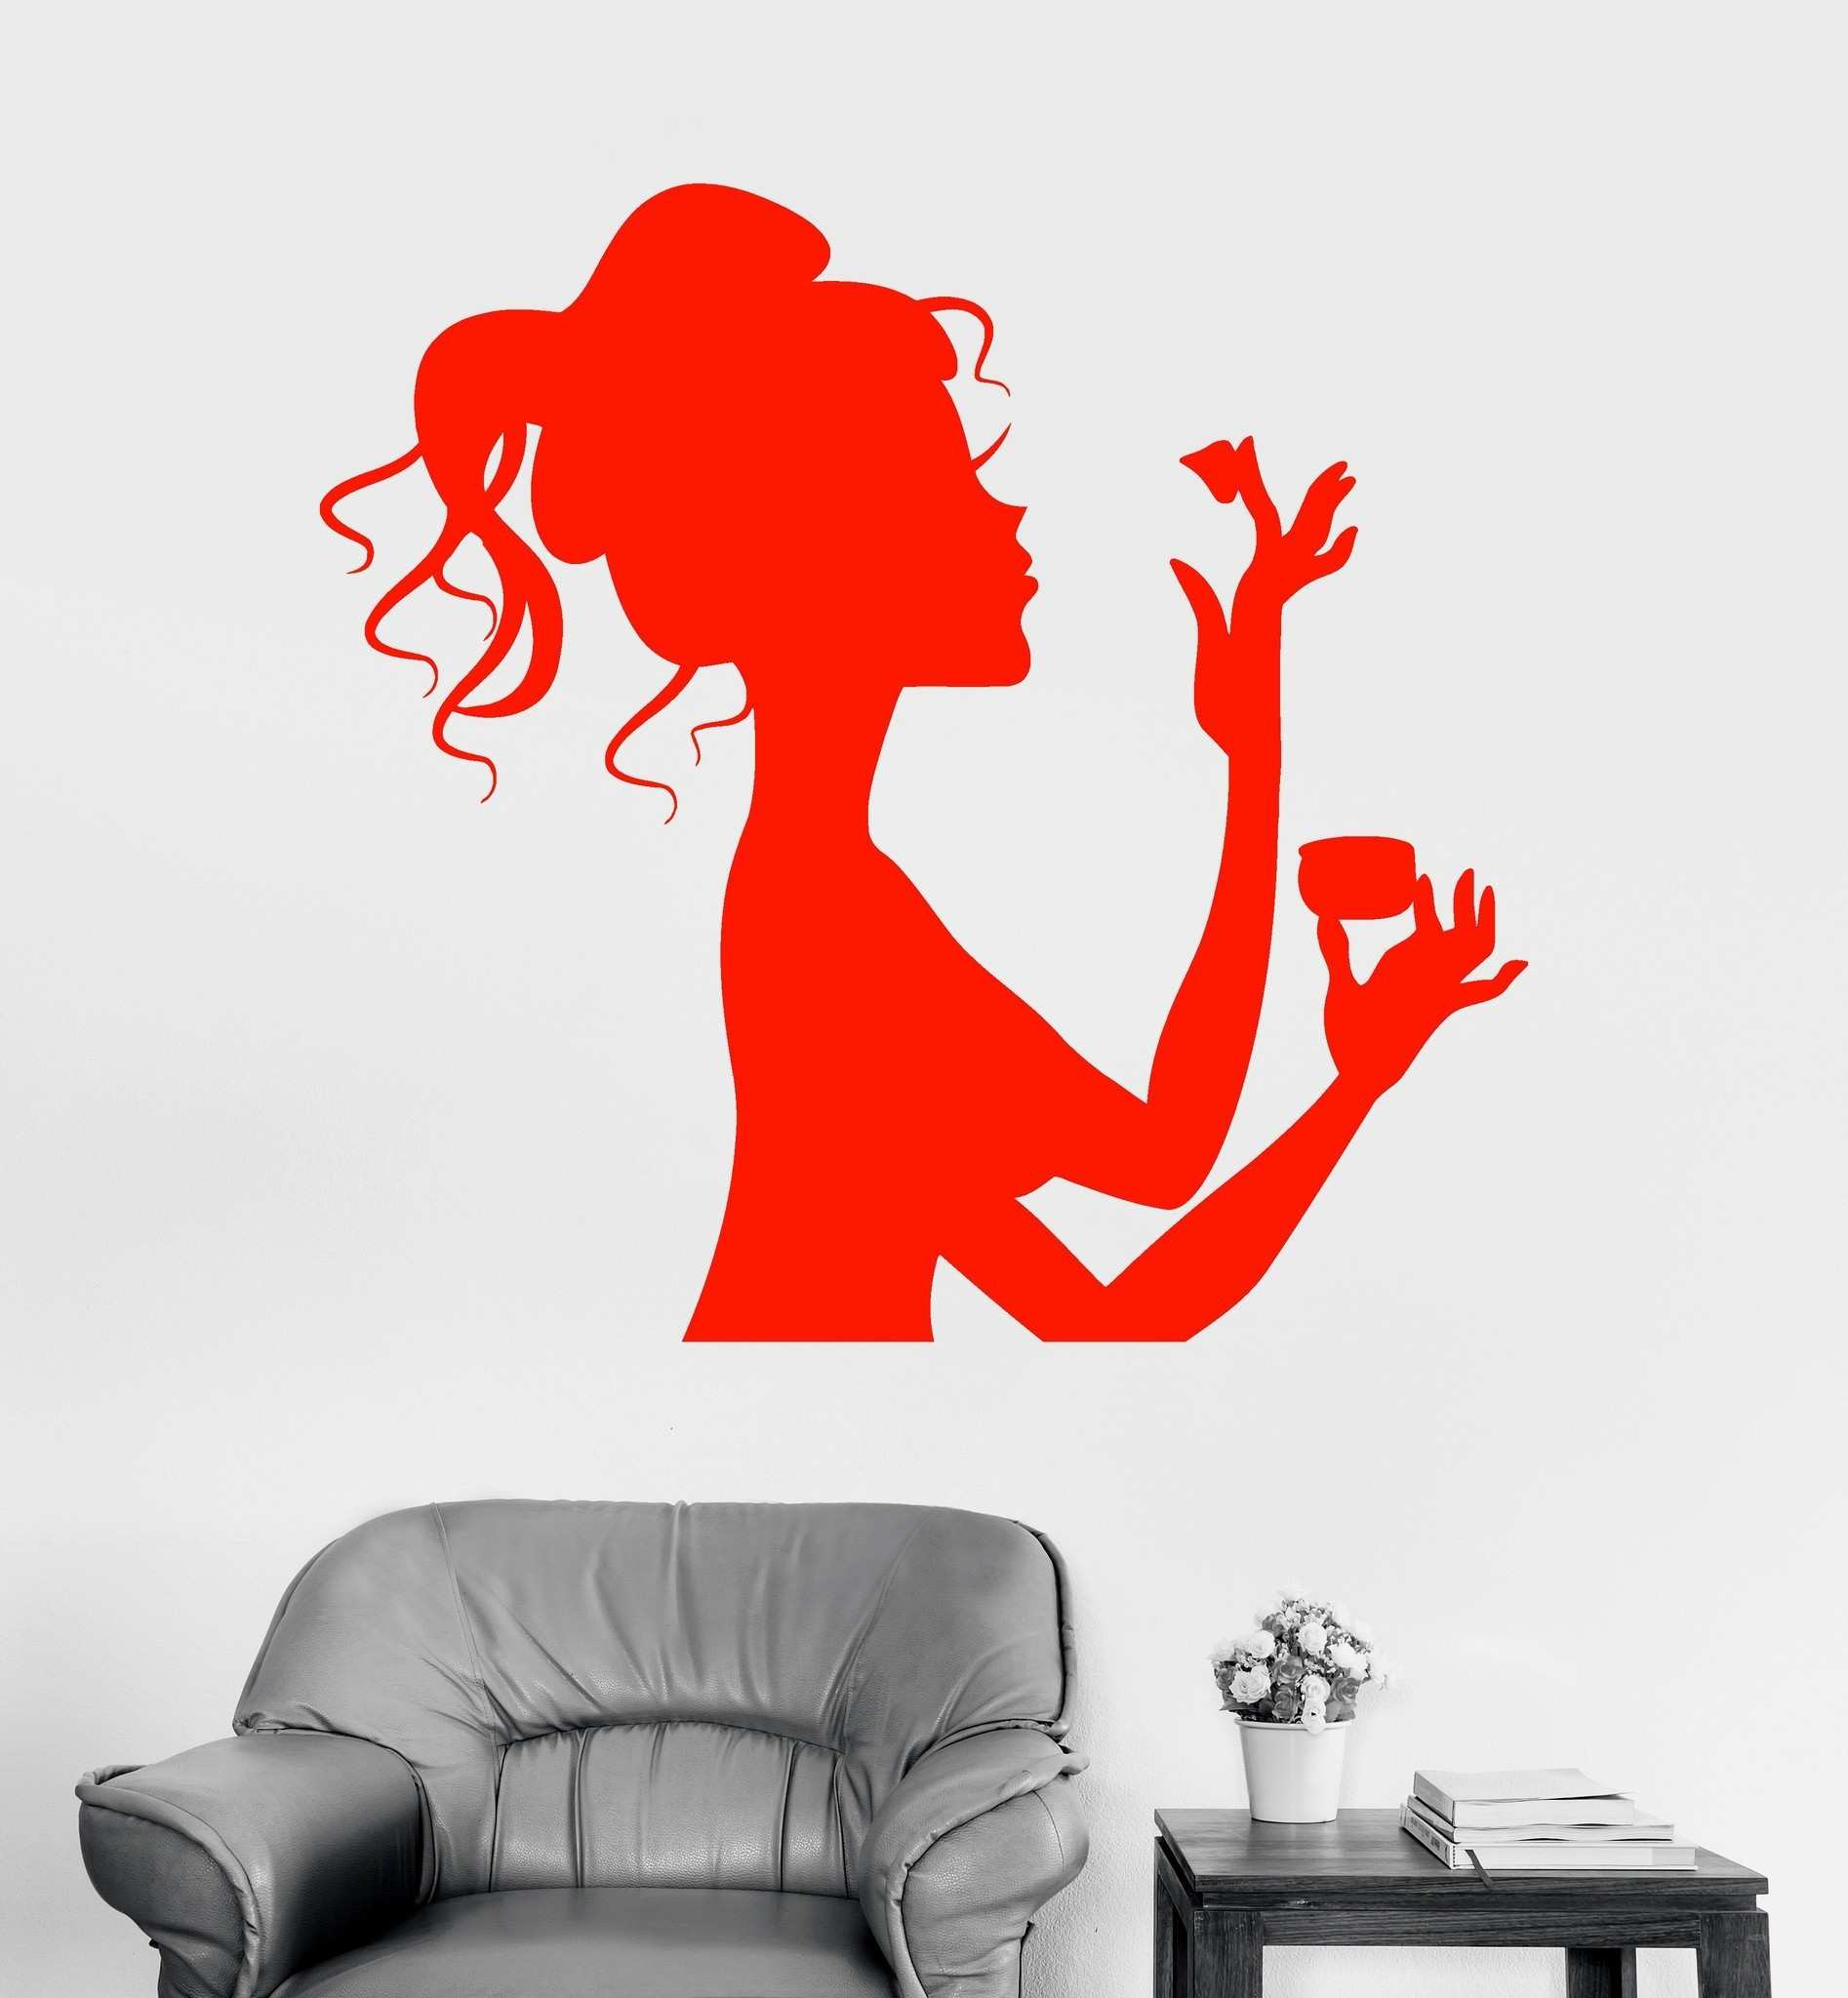 Inspirational Big Wall Decals for Bedroom